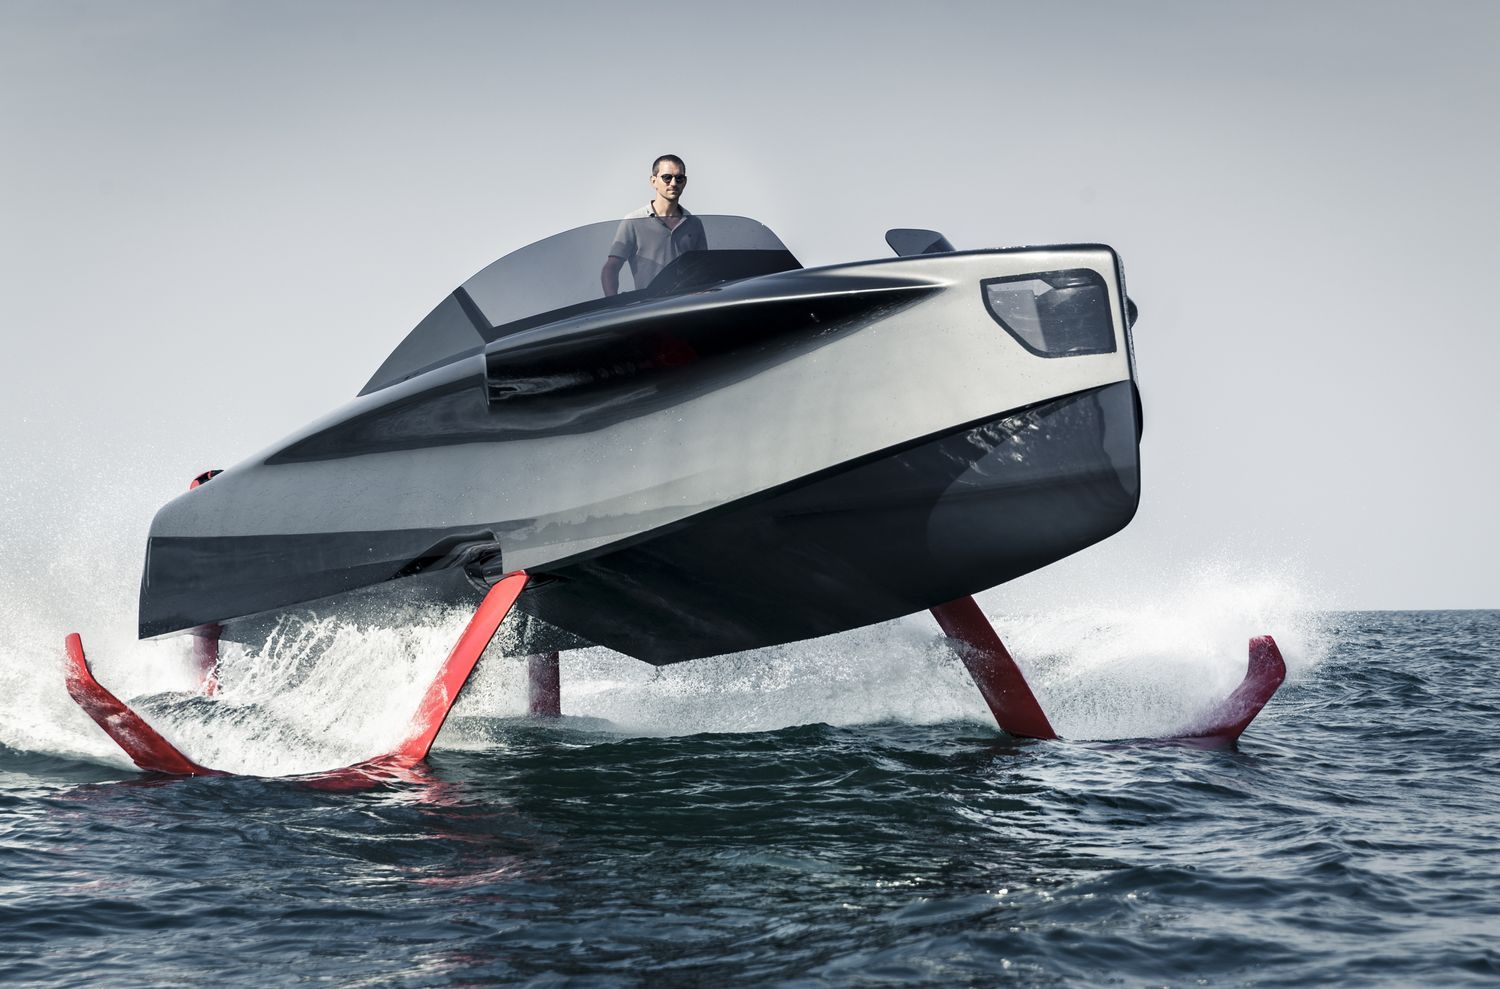 Foiler A Hydrofoil Boat From The United Arabian Emirates Boat Yacht Boats Luxury